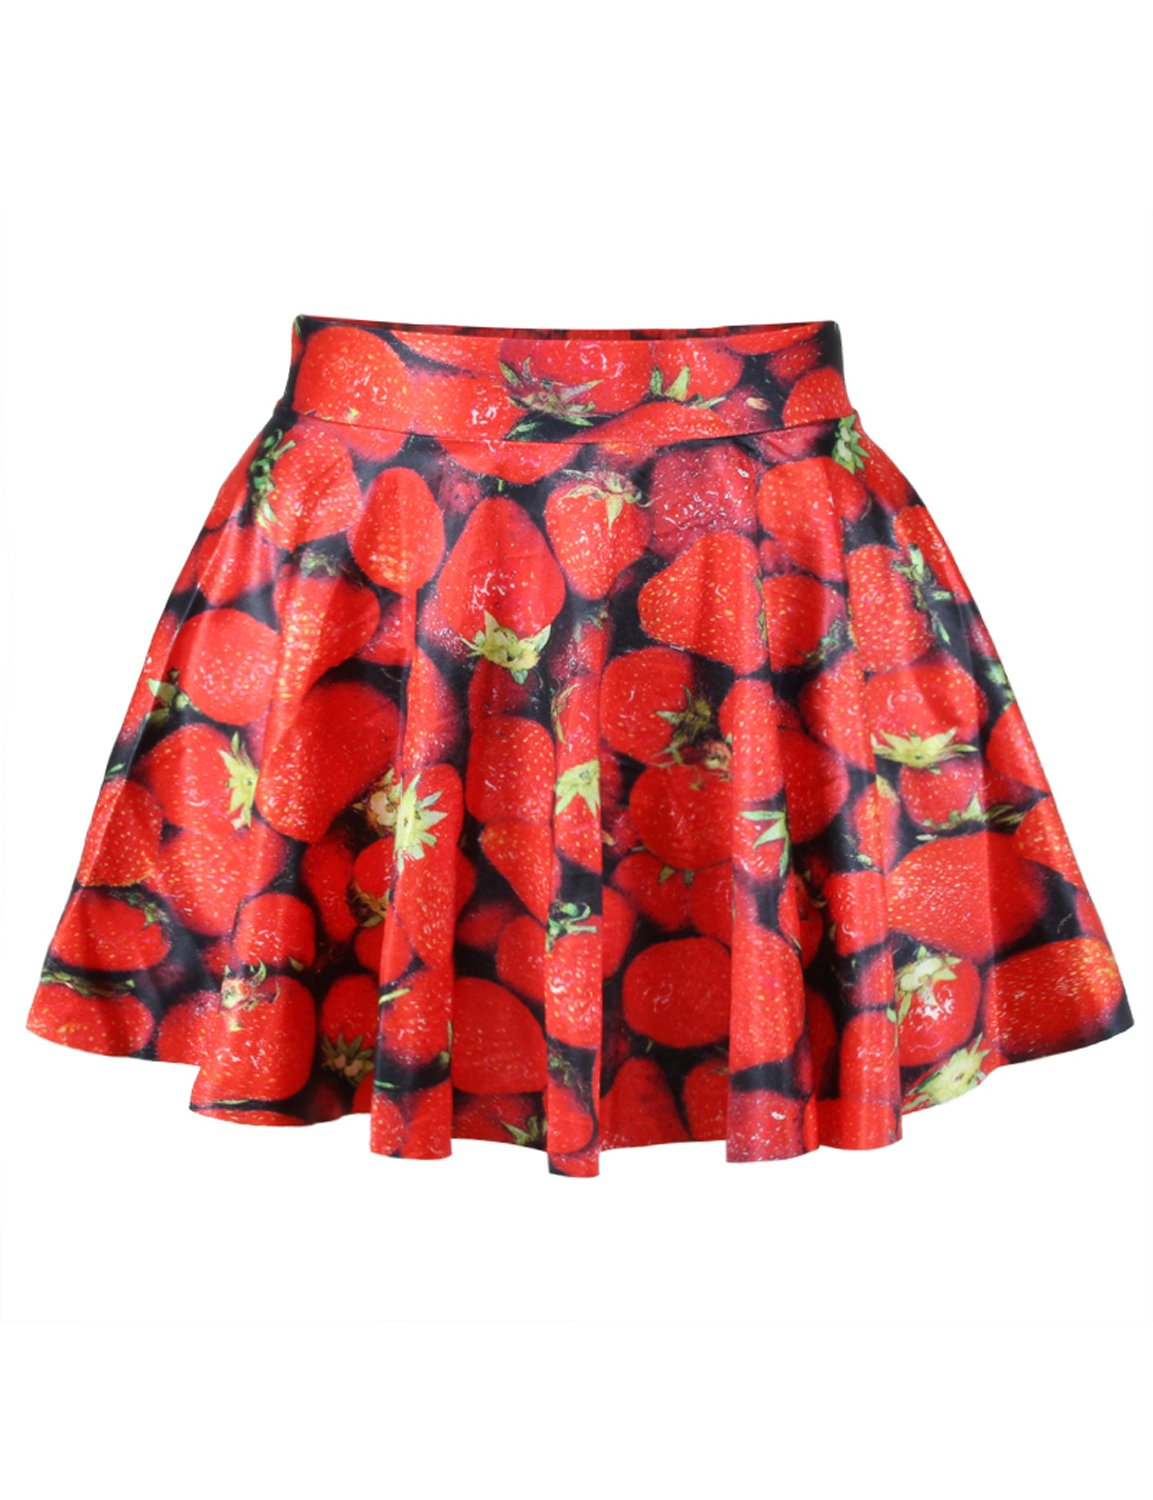 Pink Queen Women Girls Digital Print Stretchy Flared Pleated Casual Mini Skirt (Free Size, Red Strawberry)